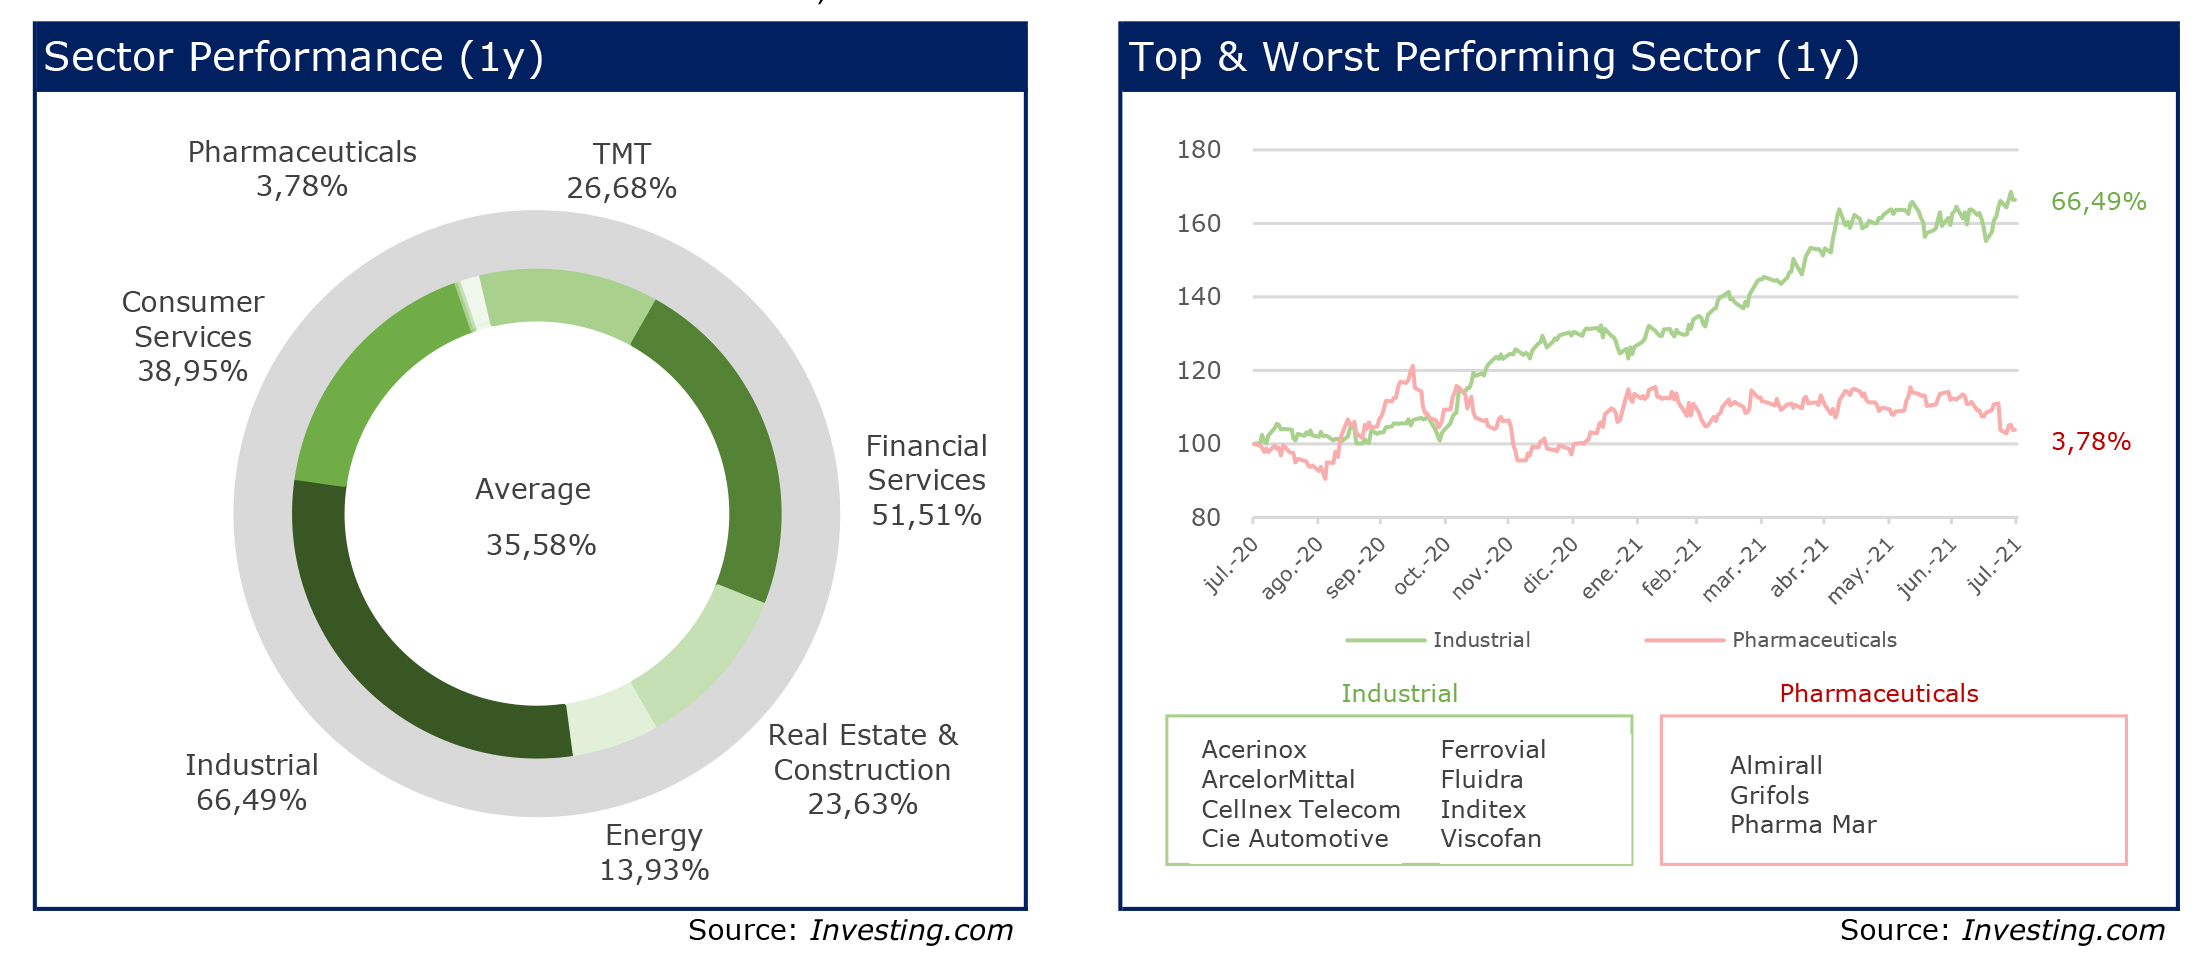 RS Corporate Finance 24 Chart Sector Performance-Top & worst sector 1y julio 2021